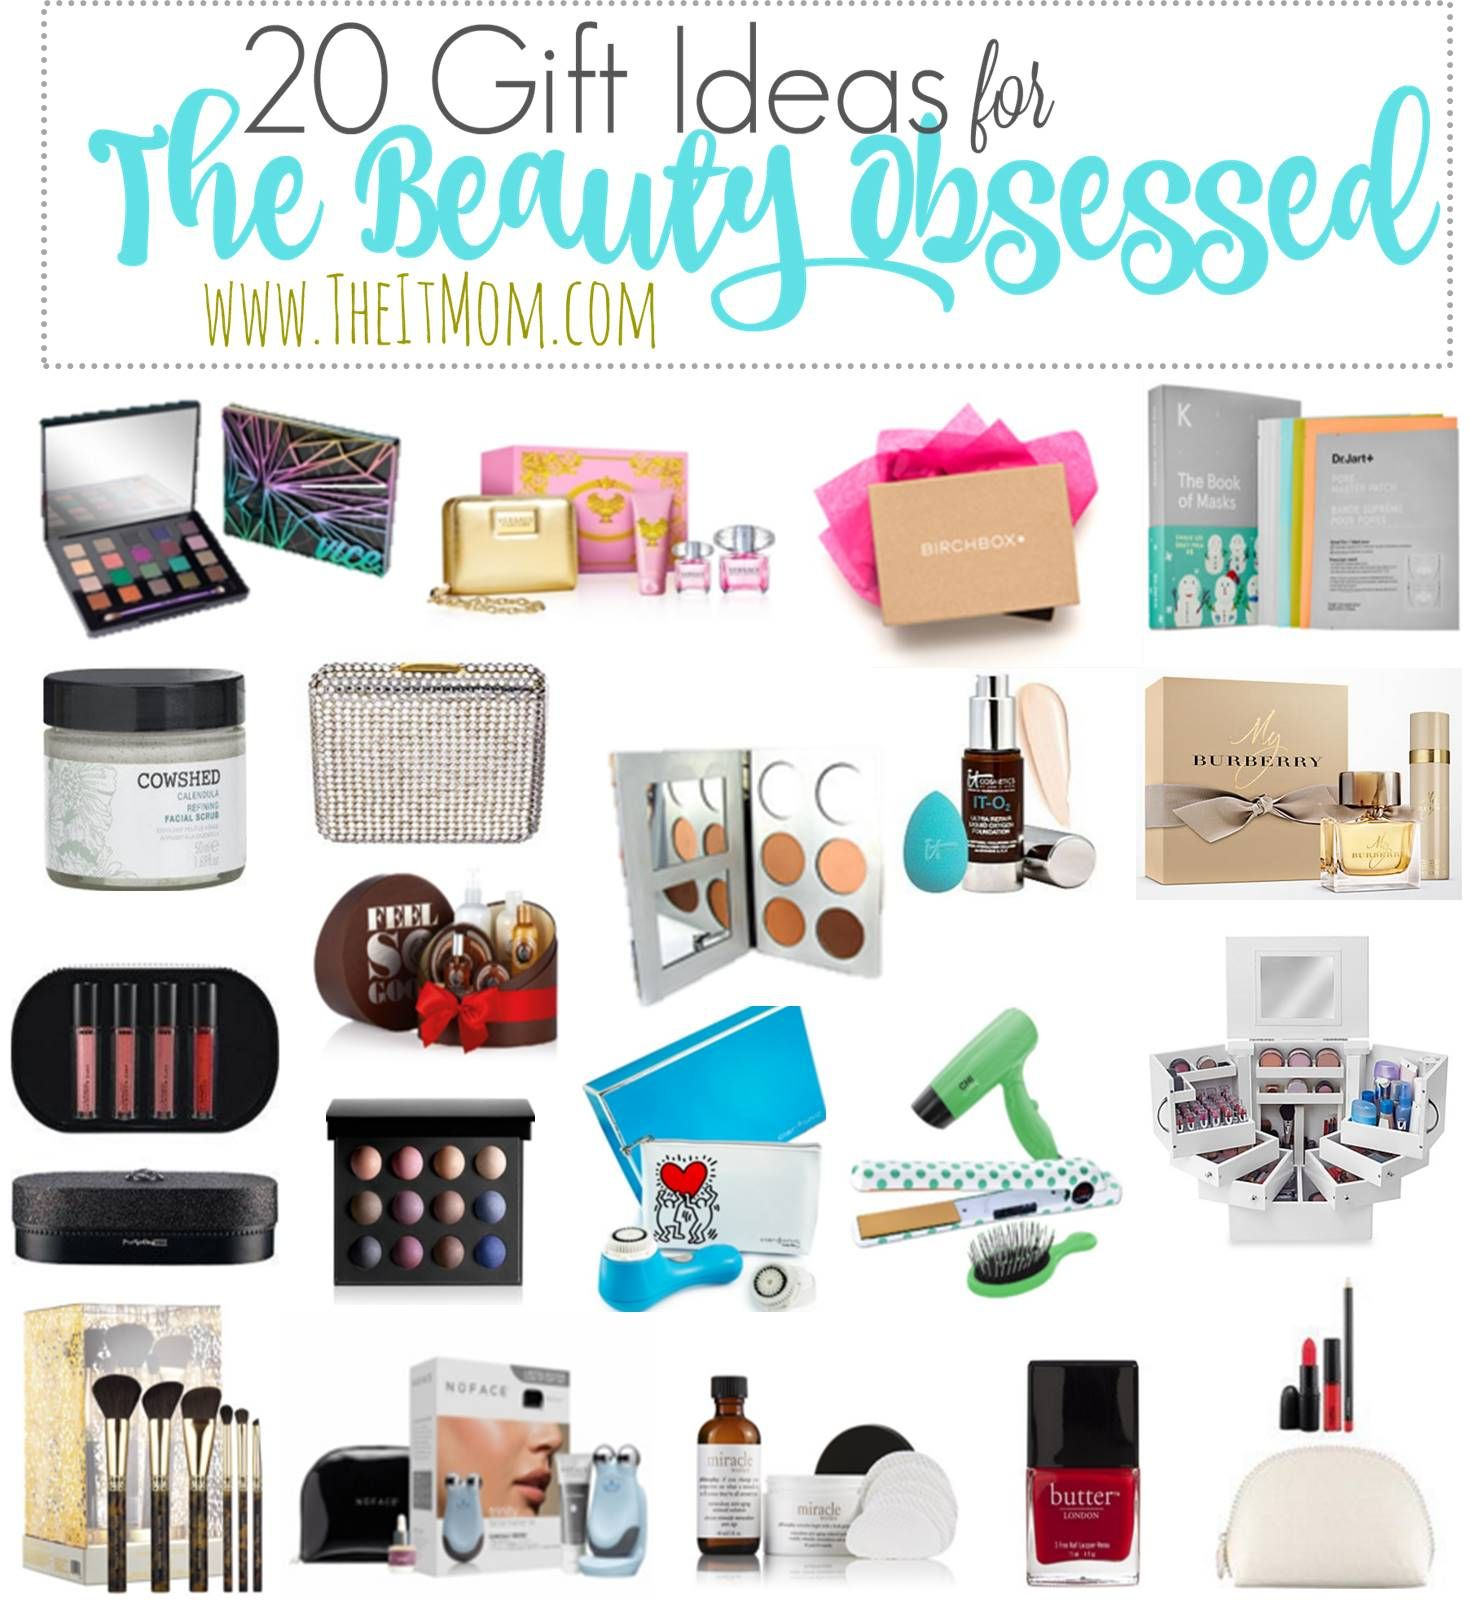 20 Amazing Gift Ideas The Beauty Obsessed Crave